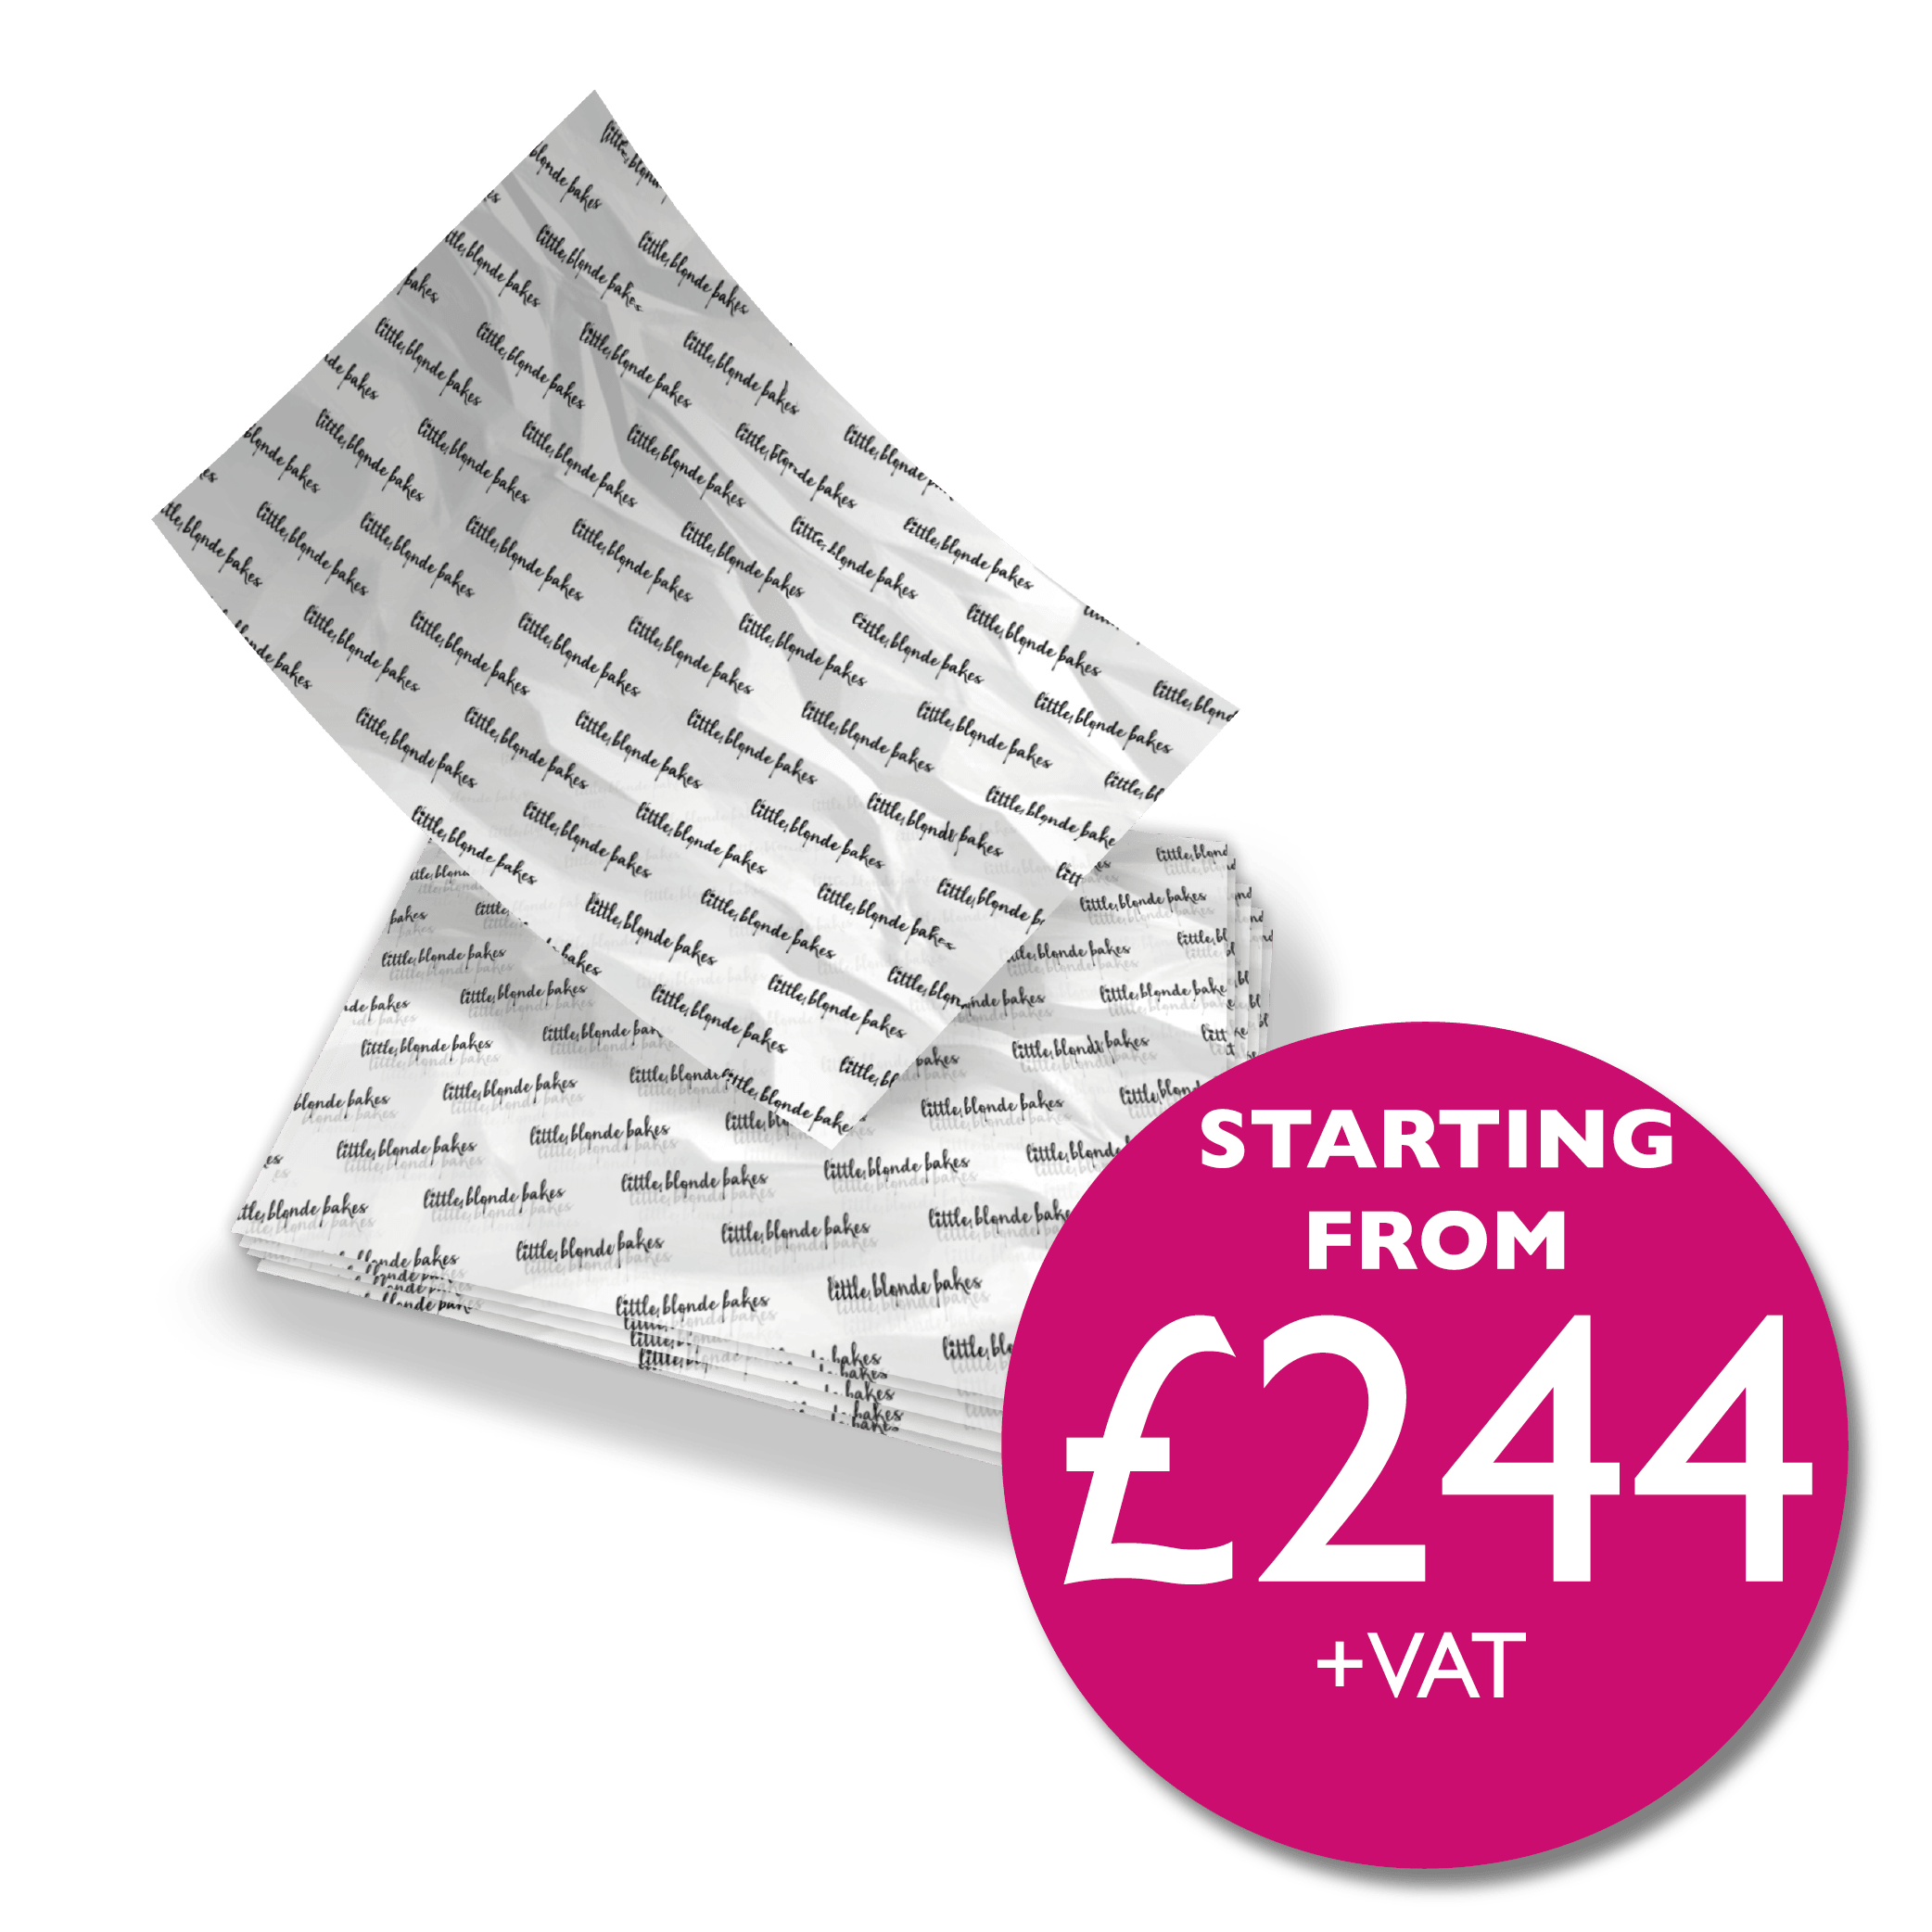 free 207+ greaseproof paper mockup yellowimages mockups. Free 6464 Greaseproof Paper Mockup Yellowimages Mockups Download Free 6464 Greaseproof Paper Mockup Yellowimages Mockups Mockups Noissue Foodsafe Paper Is Greaseproof And Customizable With Your